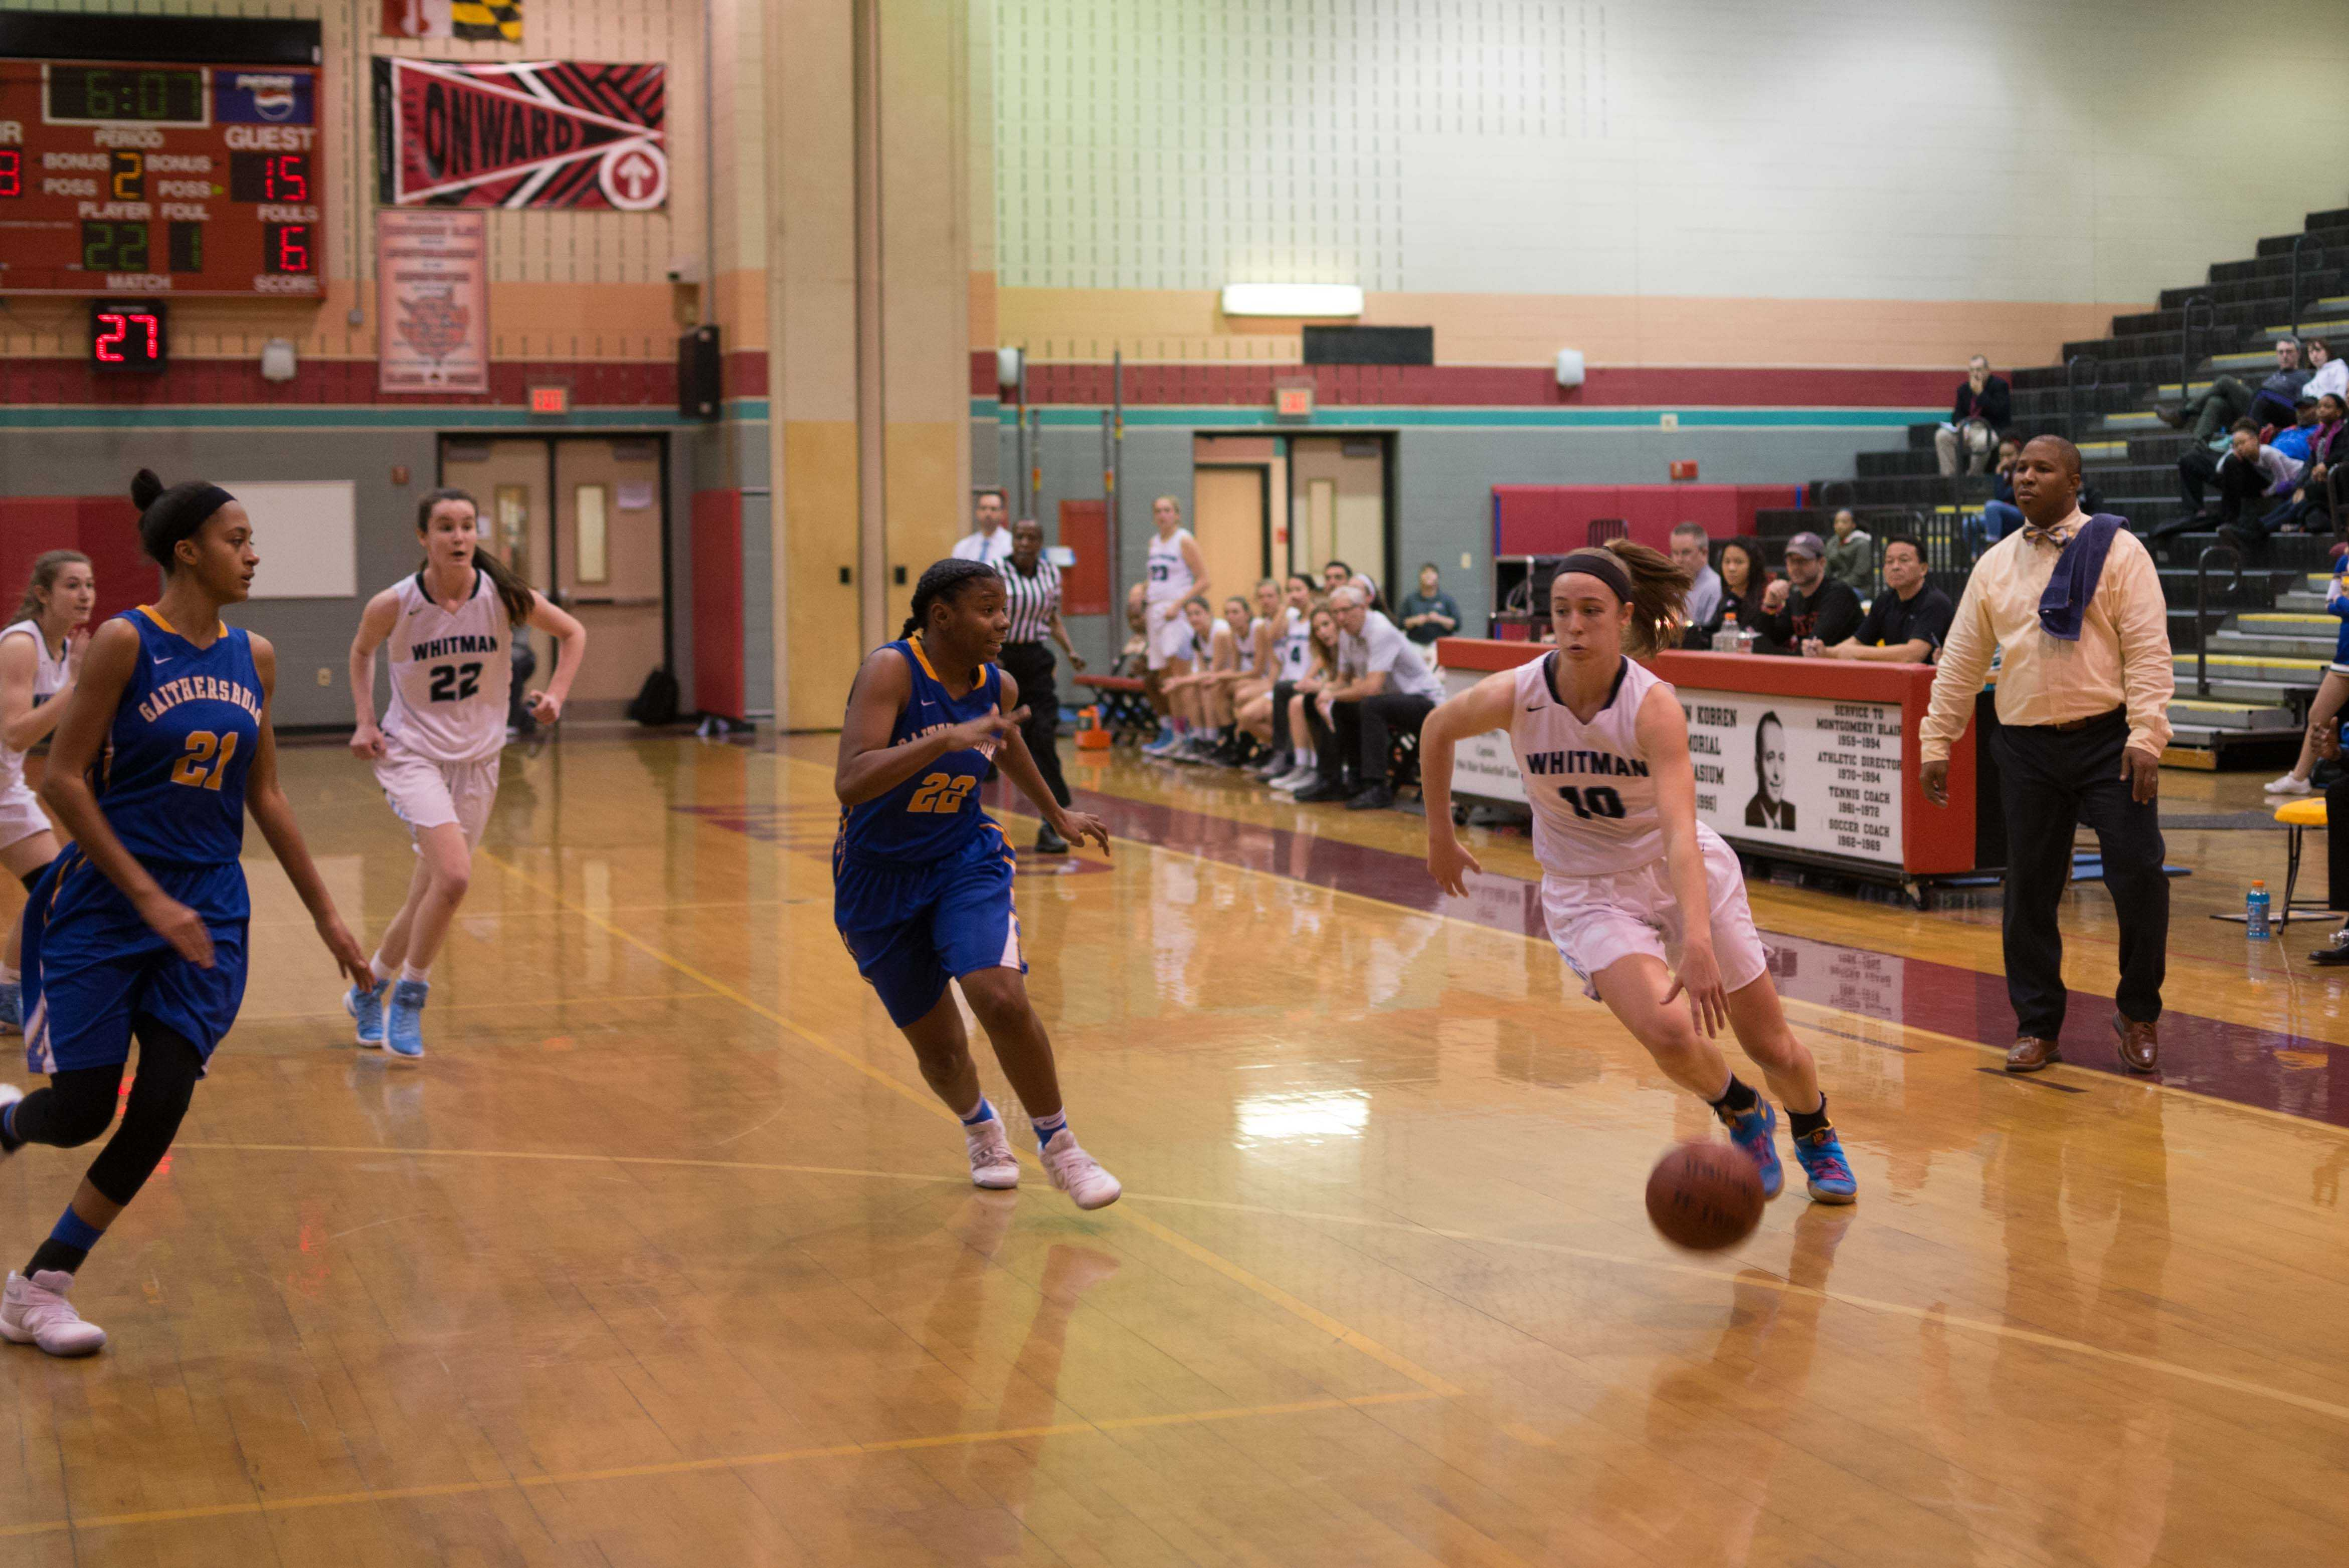 Guard Abby Meyers drives to the basket in the team's dominant 69-46 win over Gaithersburg. The Vikes outscored opponents in wins by a combined 662 points this year. Photo by Tomas Castro.